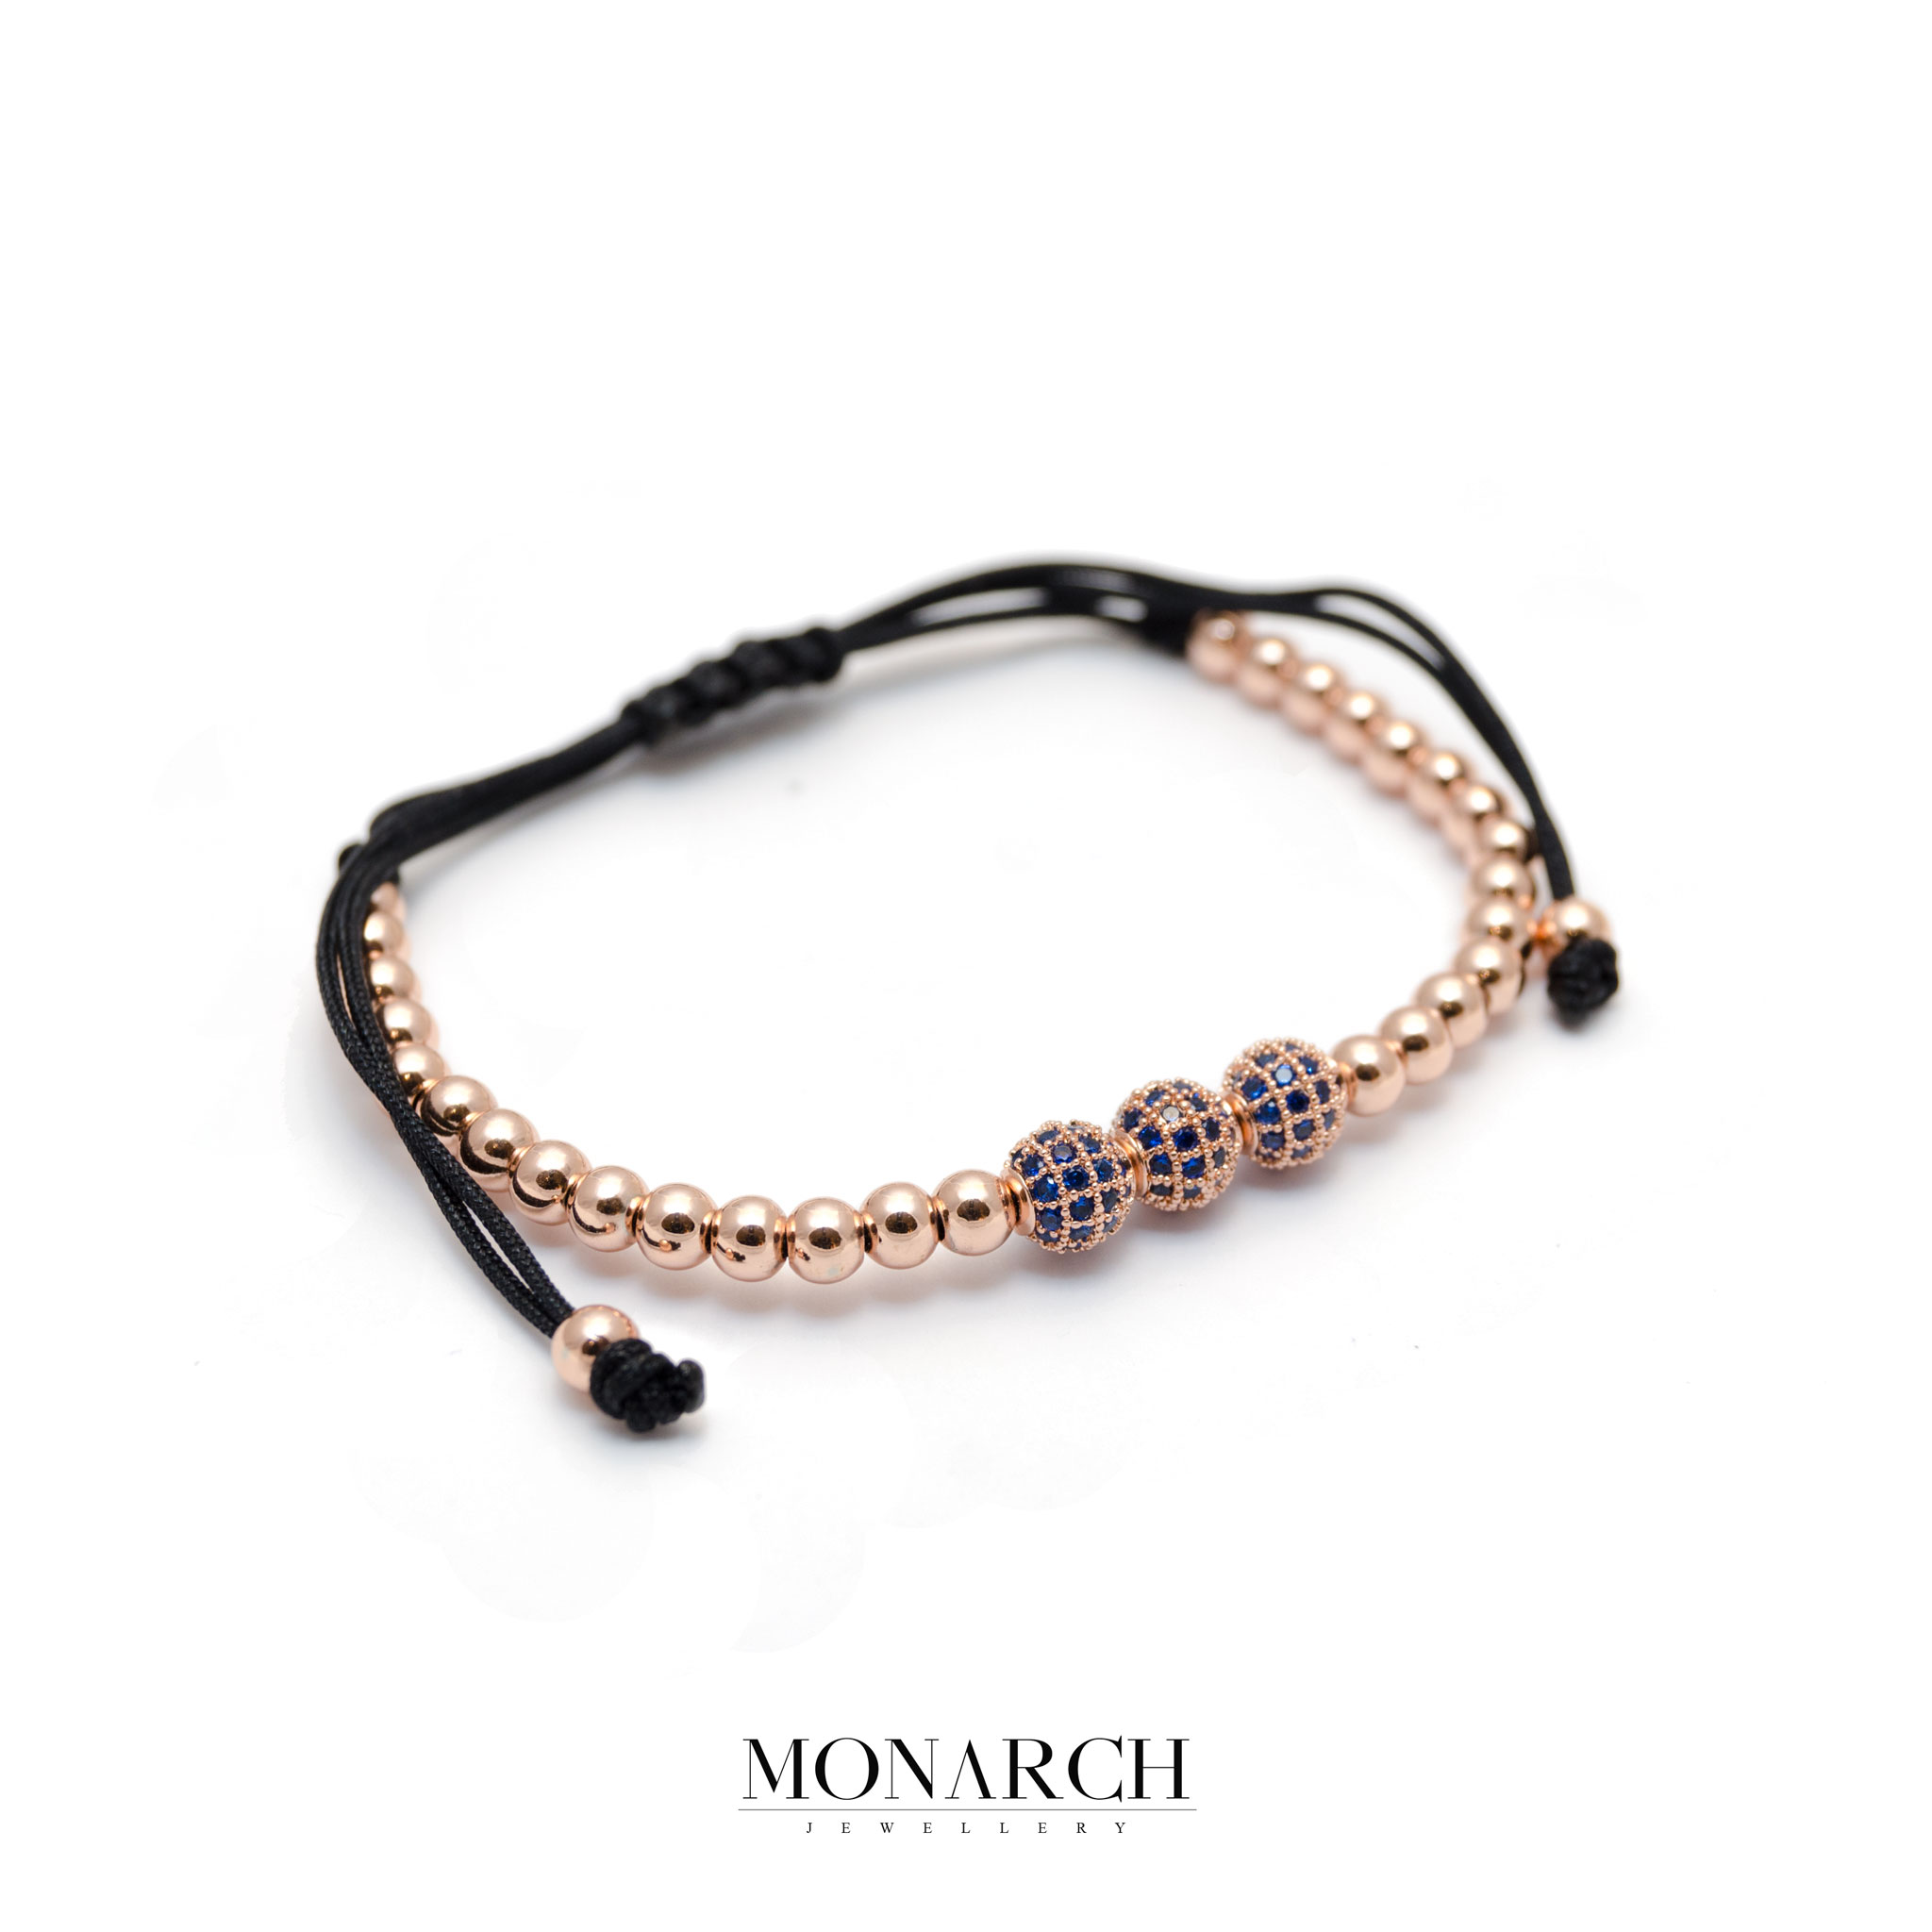 Monarch Jewellery Gold Rose 3 Bead Macrame Bracelet